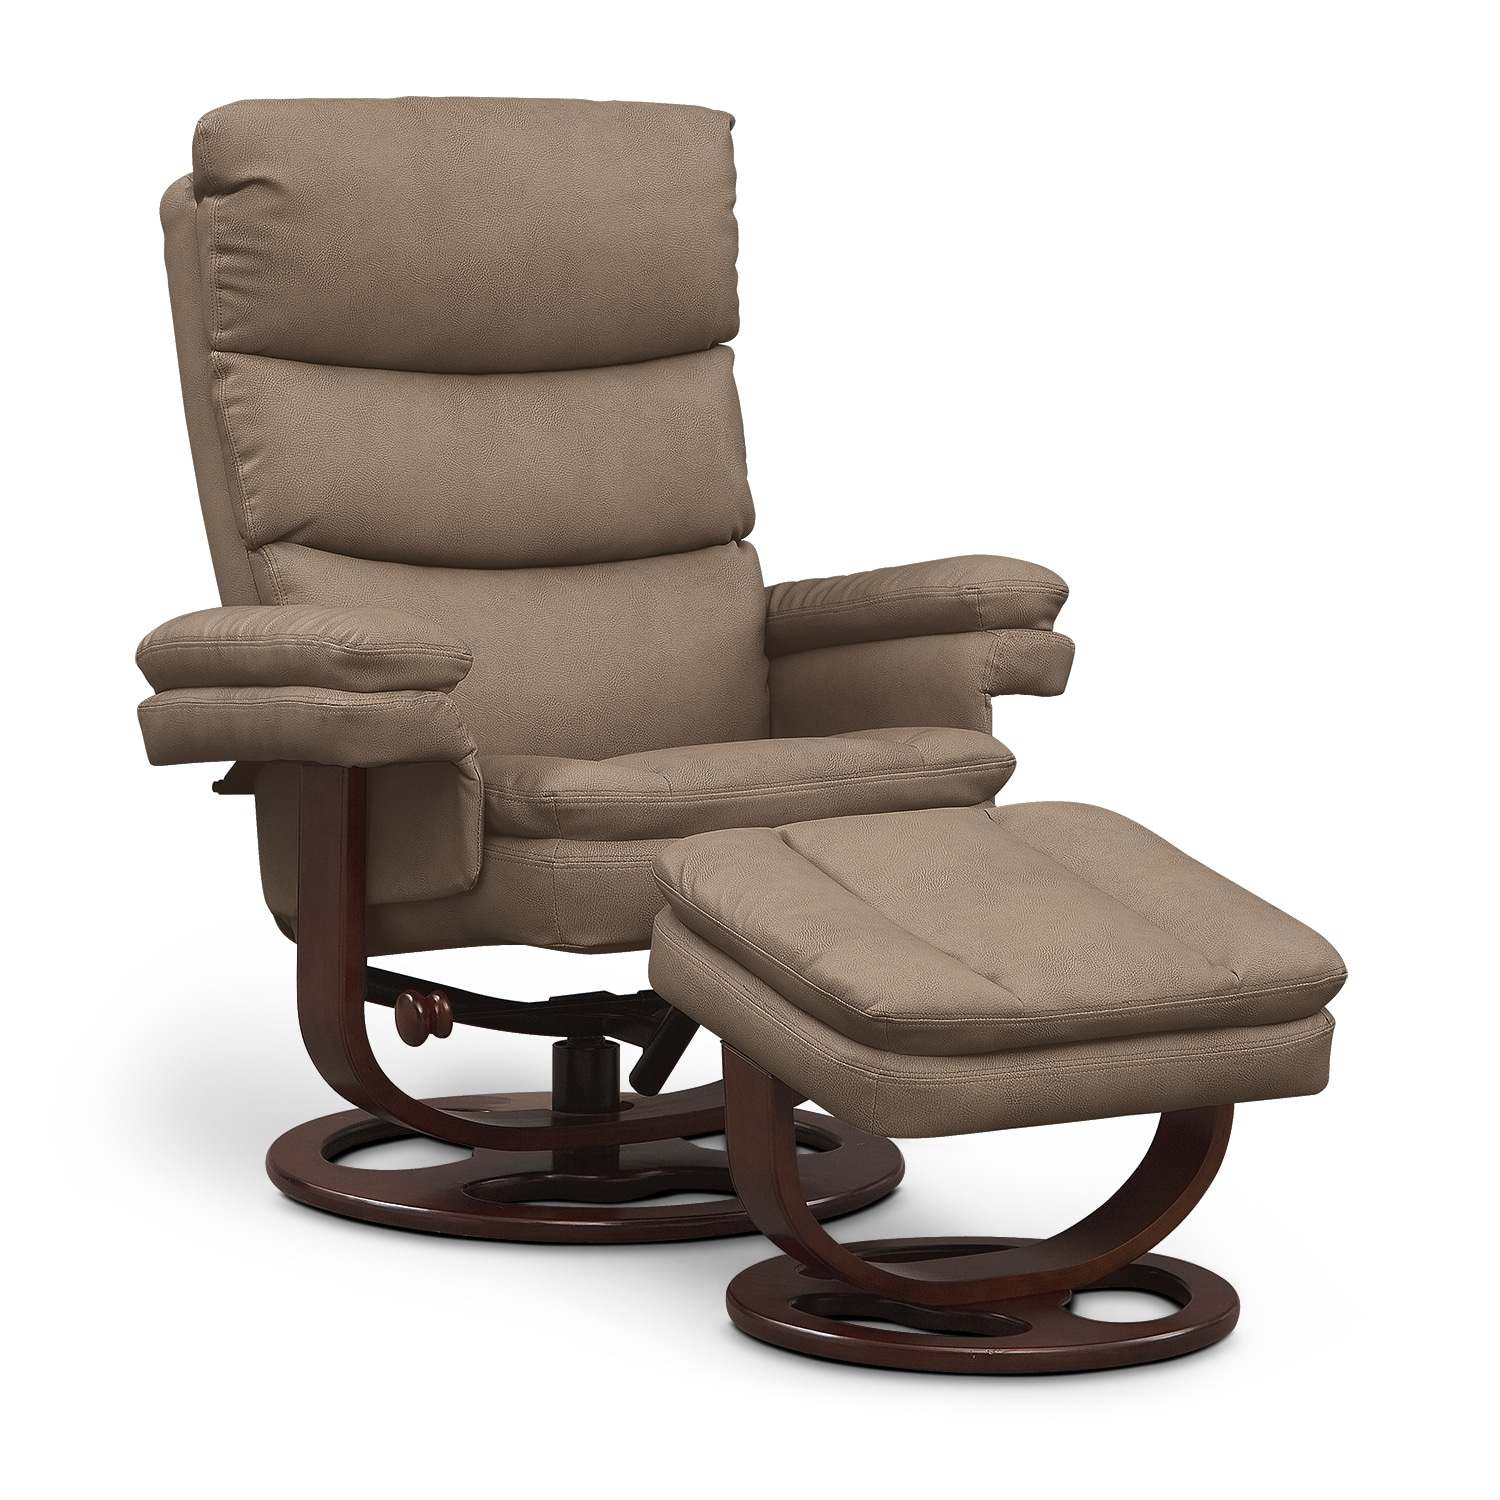 Matador Reclining Chair and Ottoman